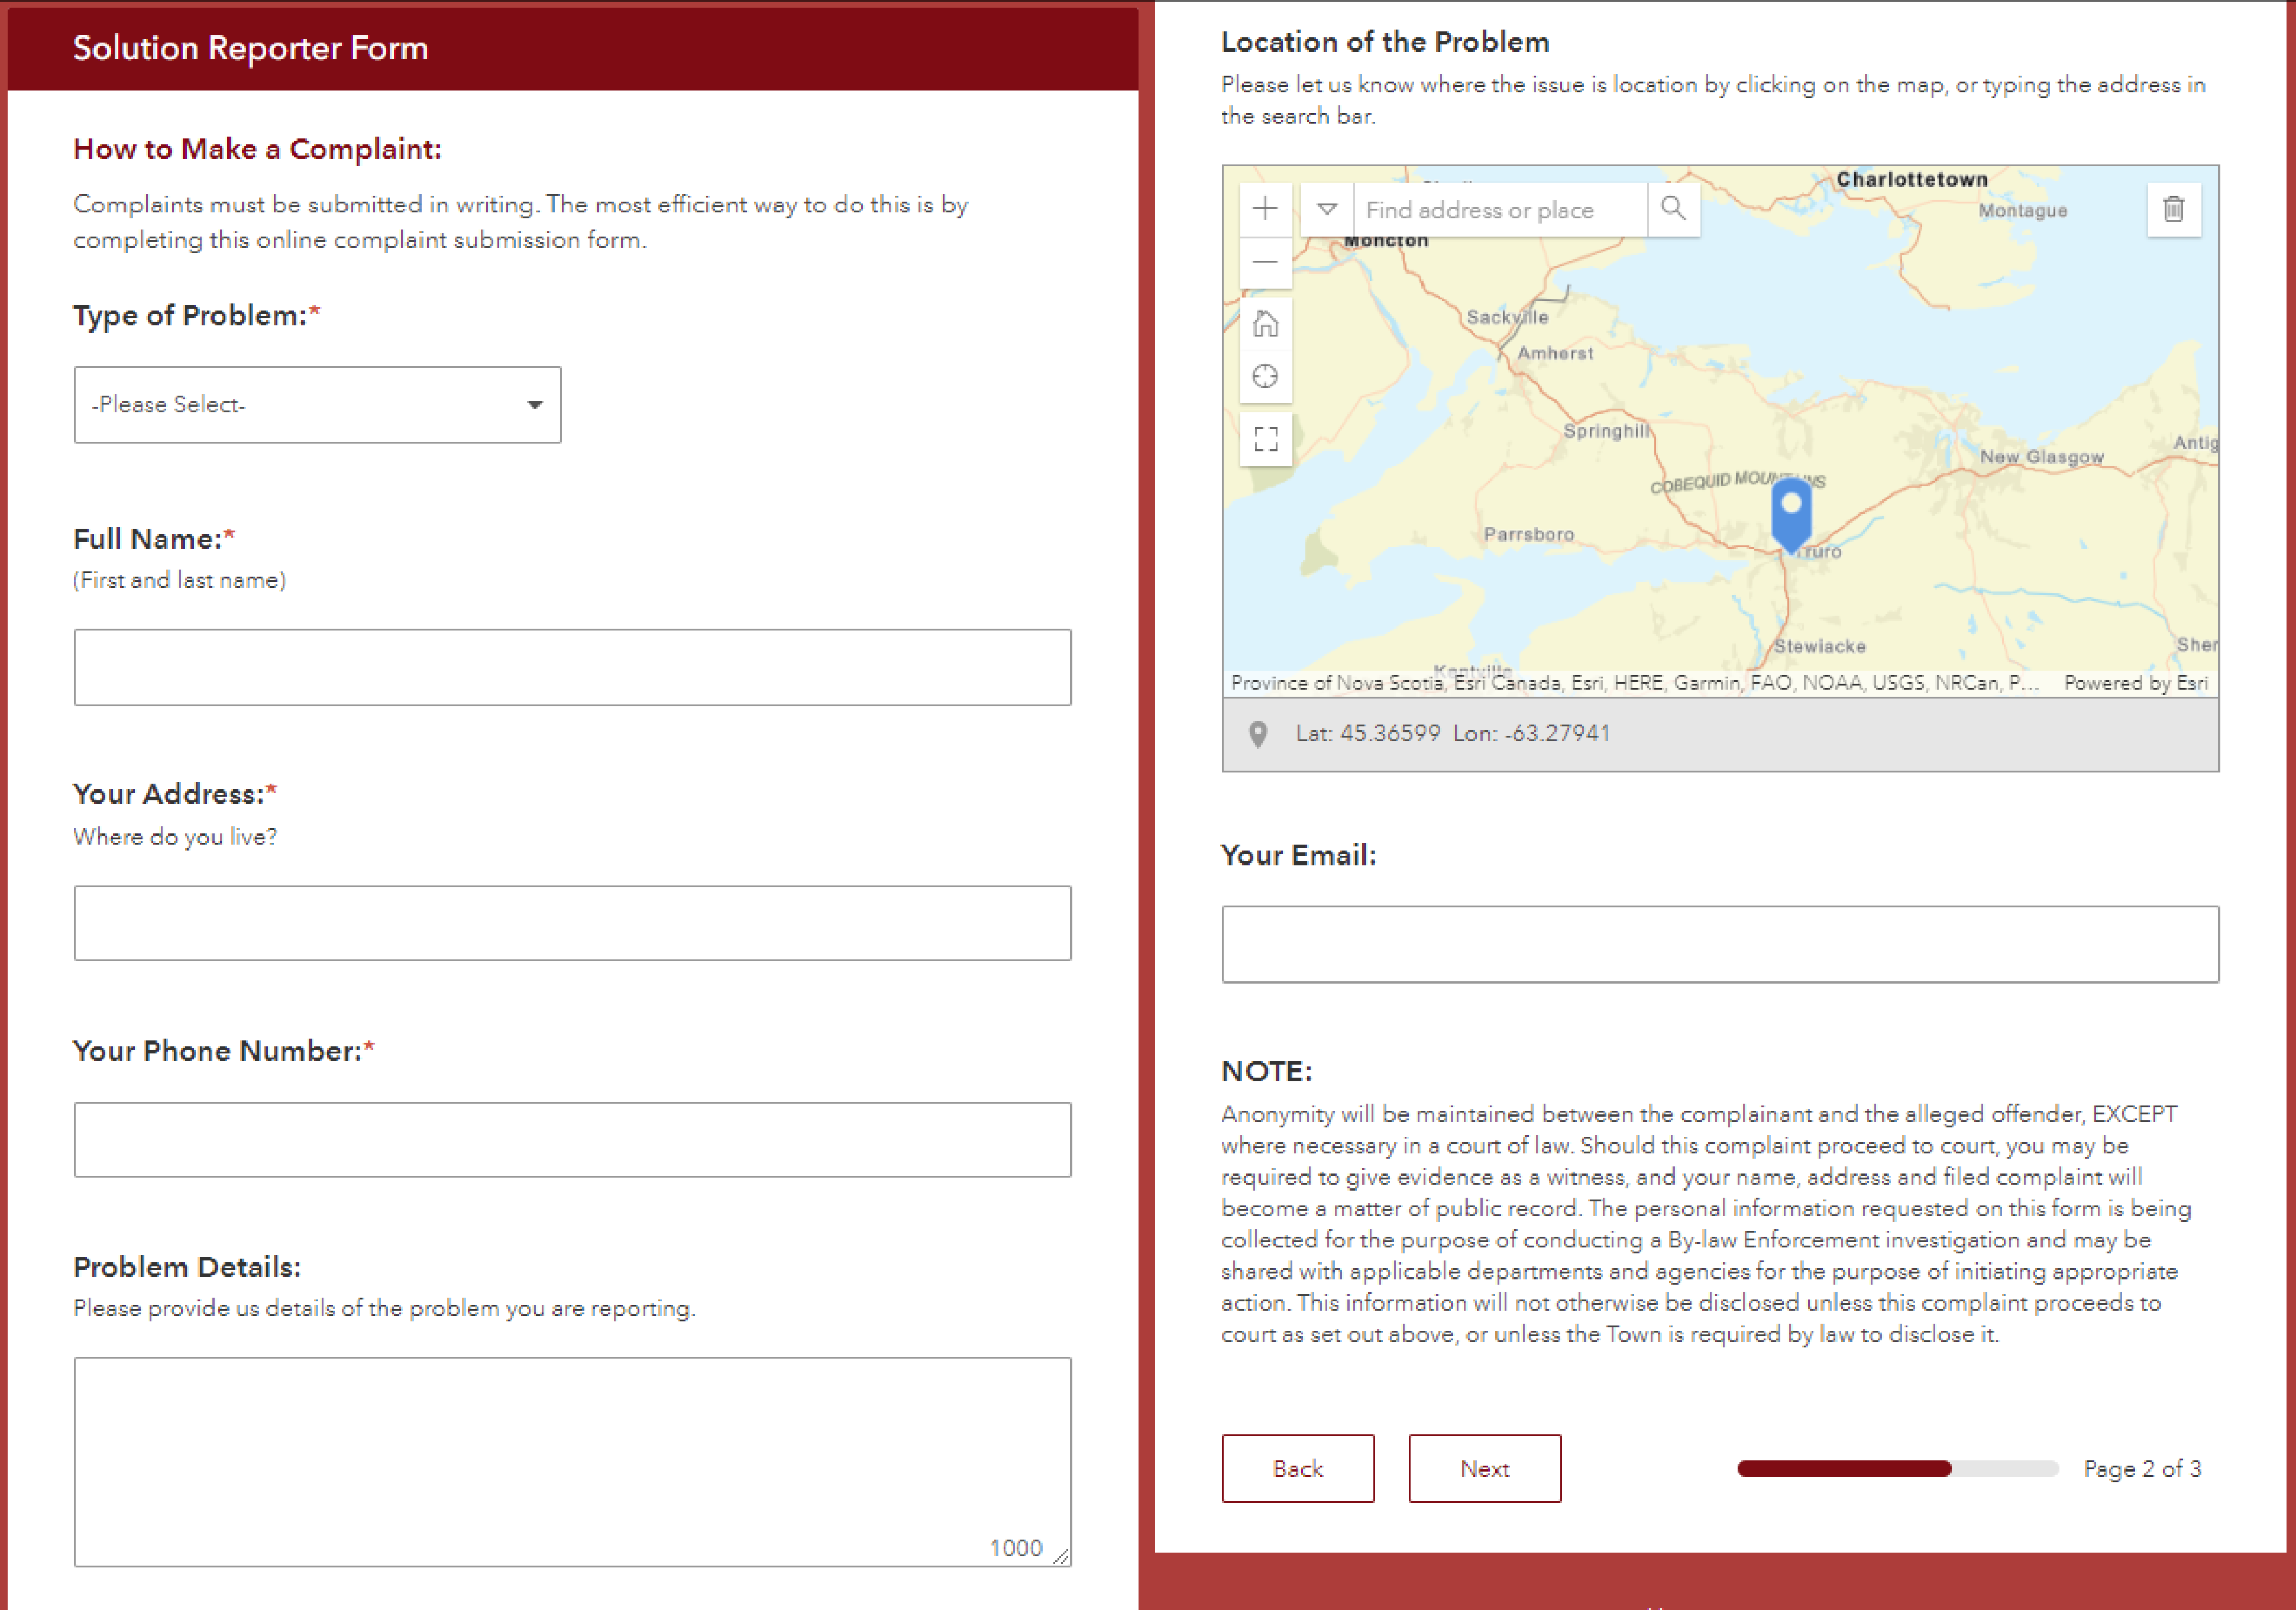 A preview of the Solutions Reporter survey. Users are asked to fill in fields identifying the type of problem they have, their full name, their address, their phone number, details of the problem and the location of the problem. They are also asked to submit their email address for follow-up purposes.